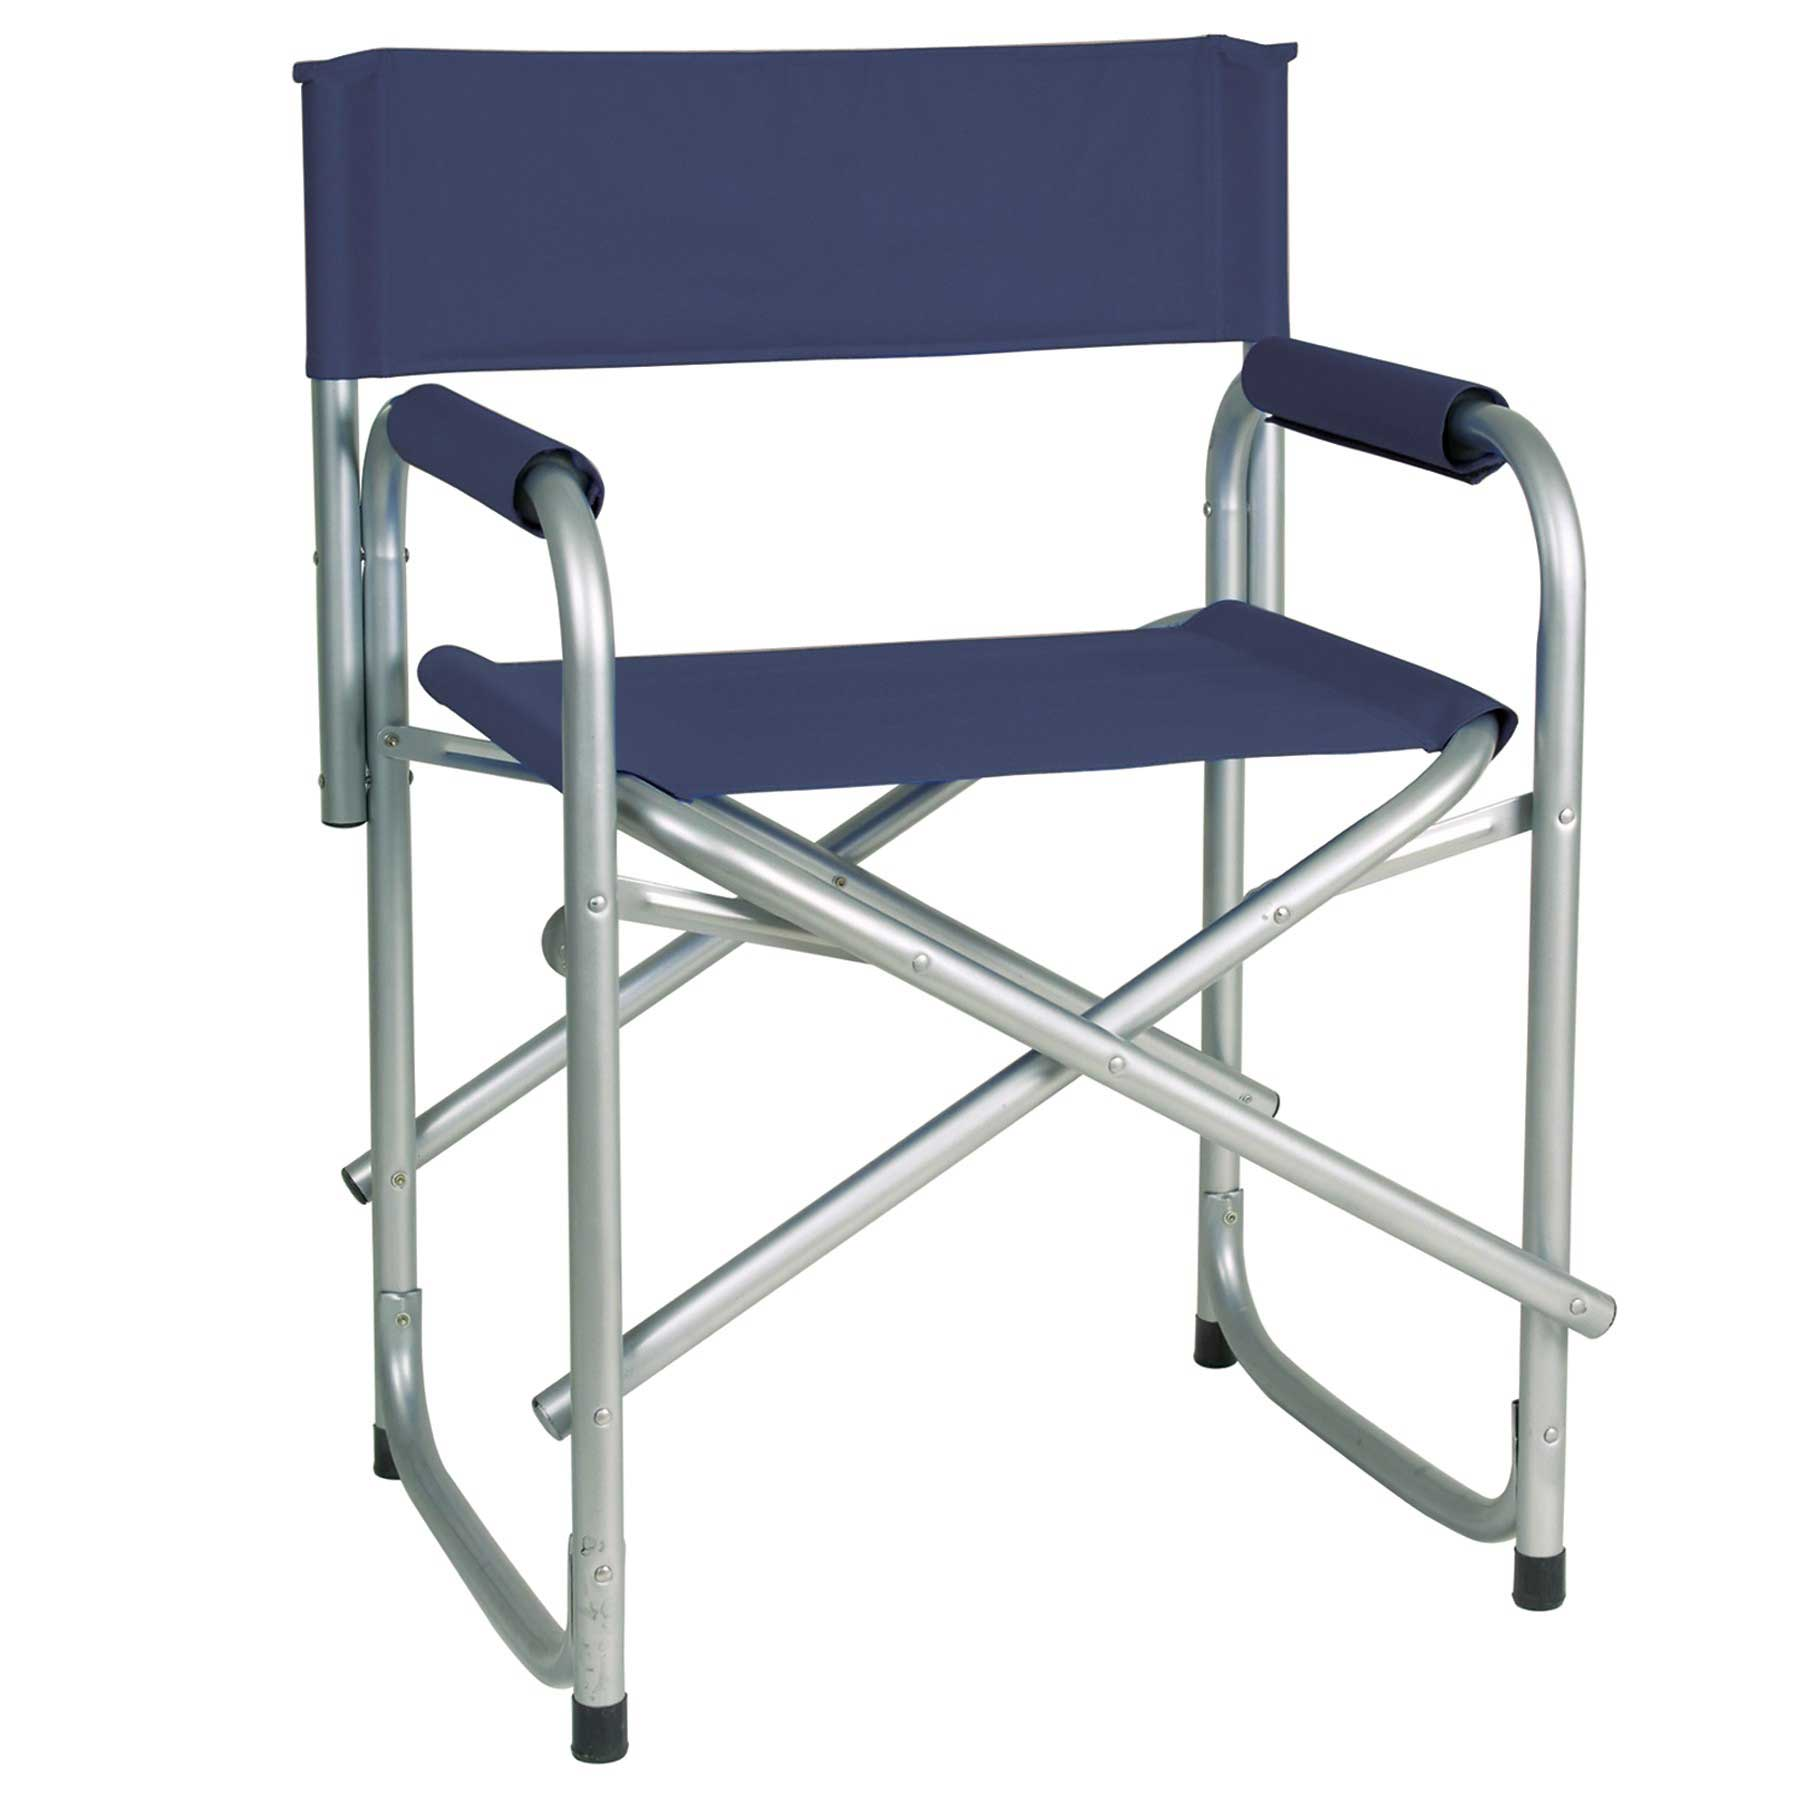 Portable Director Chair with Side Table Easy Up Steel Folding